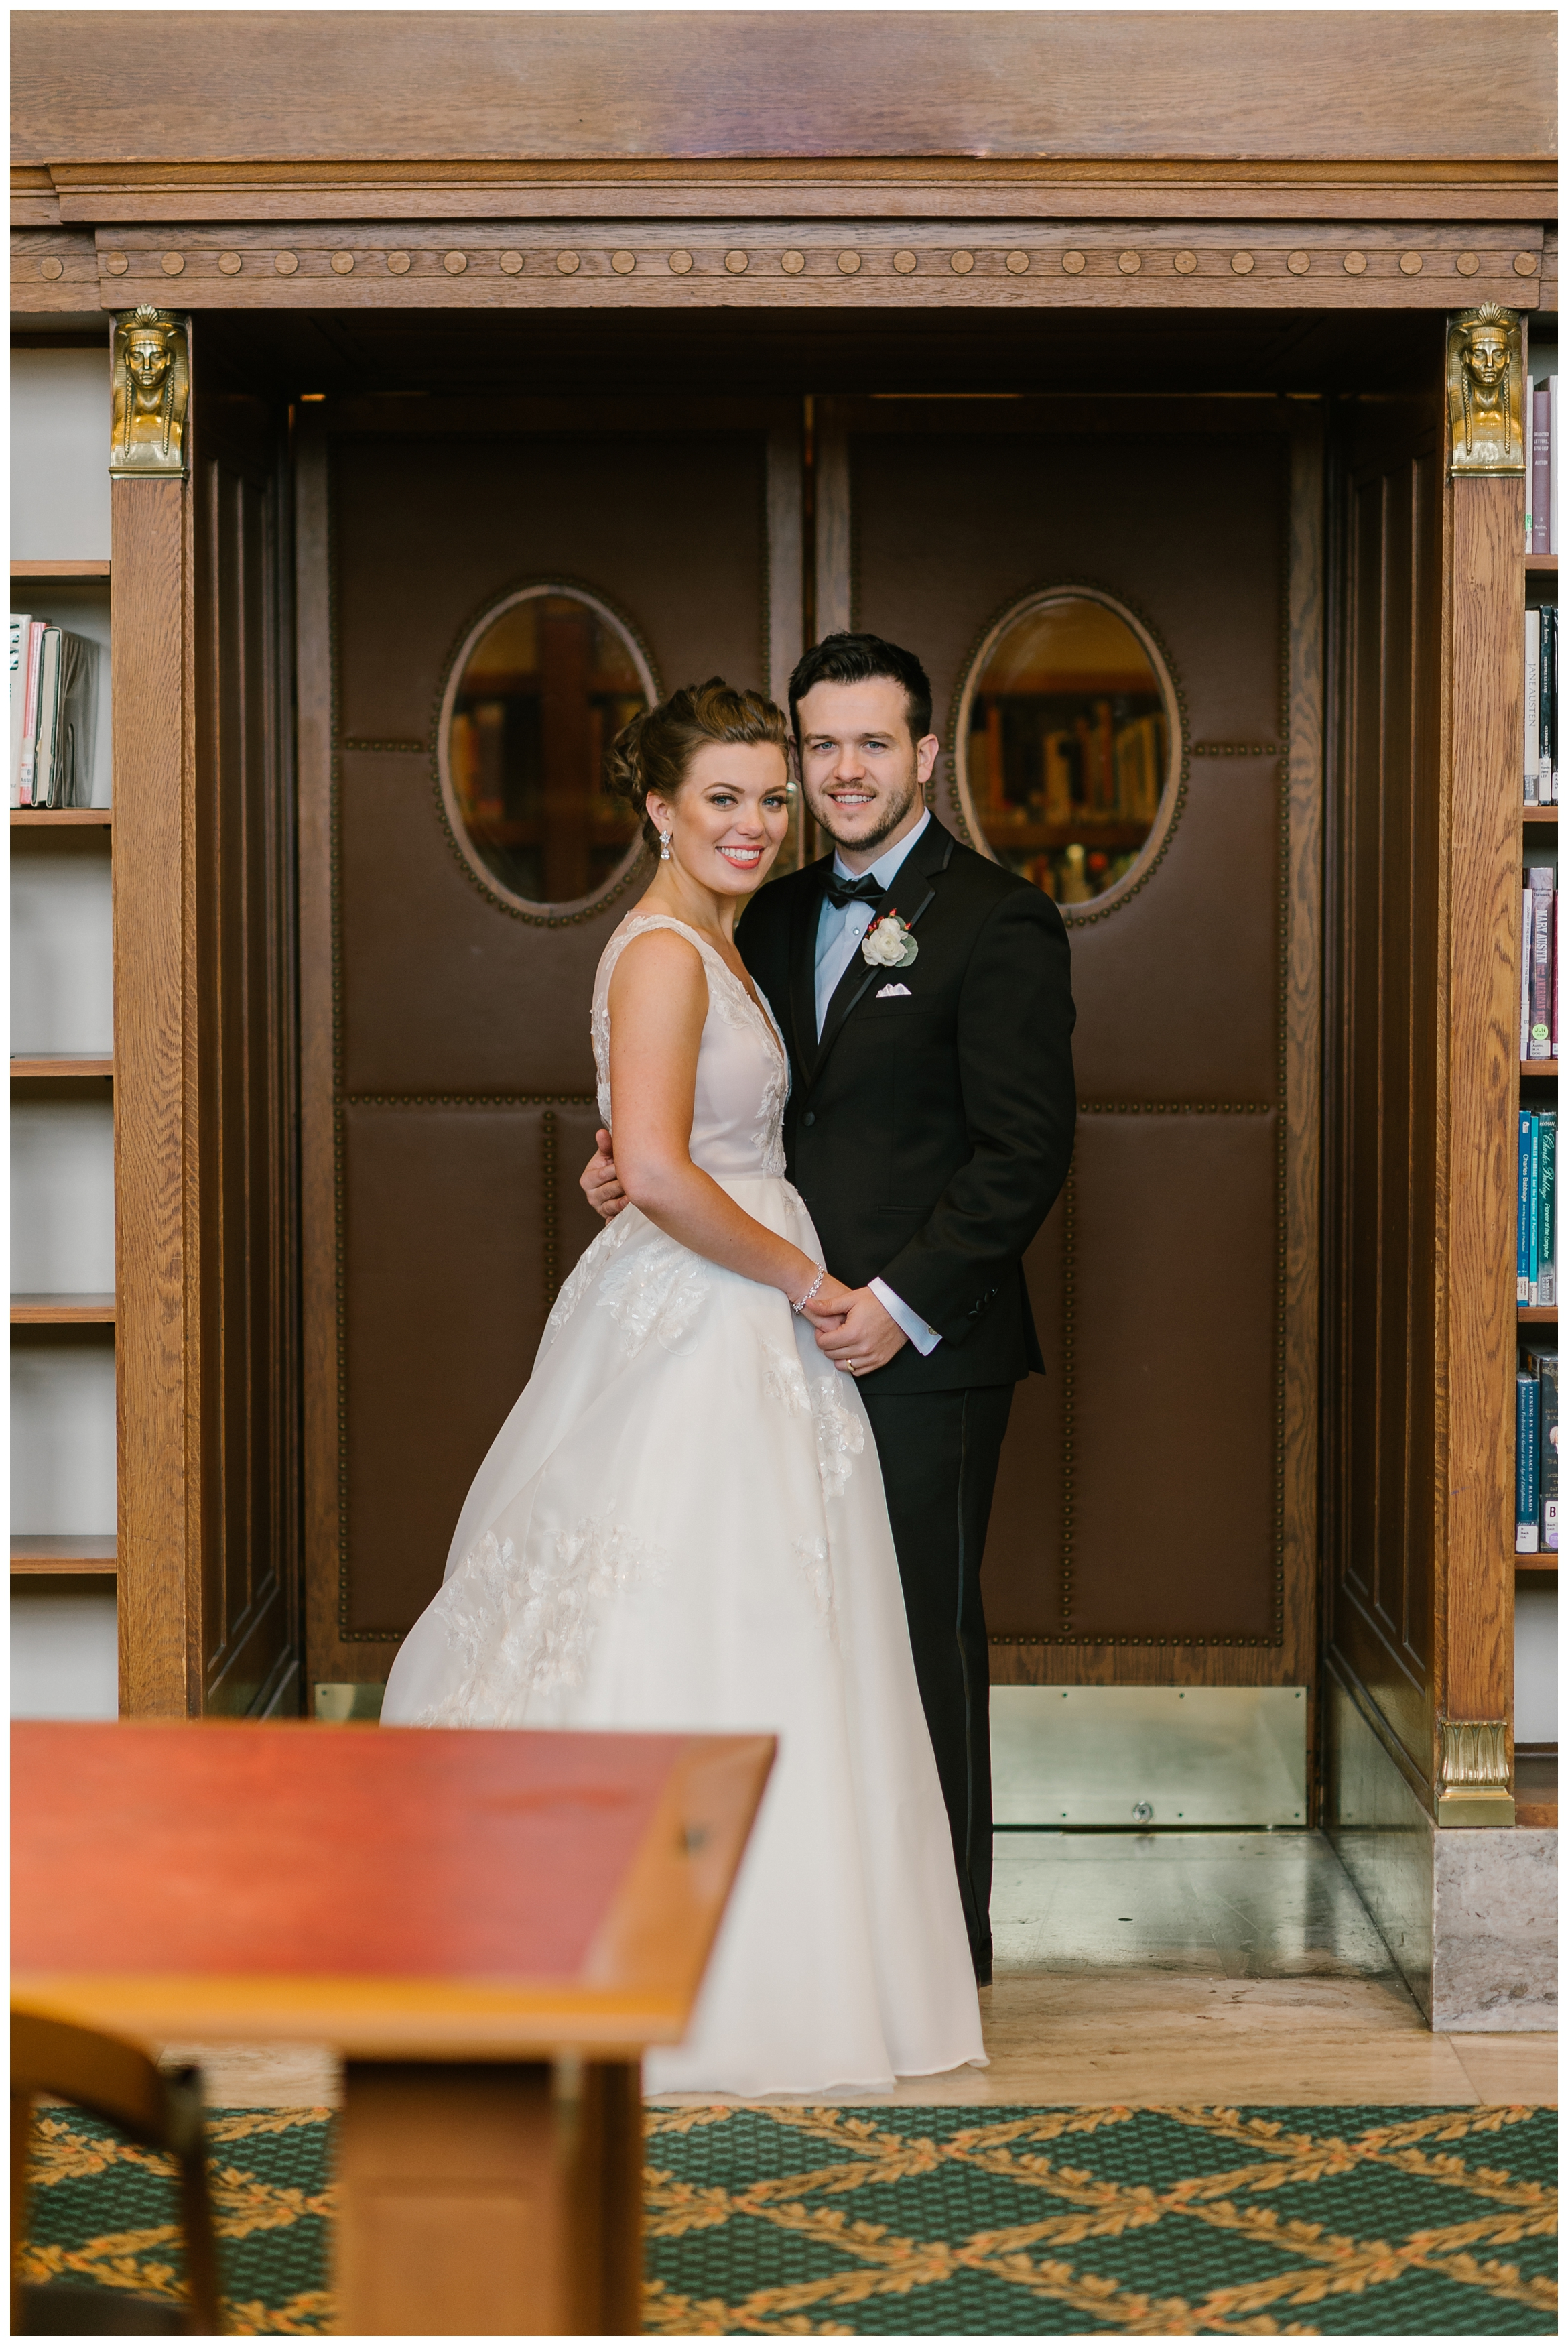 Rebecca_Shehorn_Photography_Indianapolis_Wedding_Photographer_7729.jpg